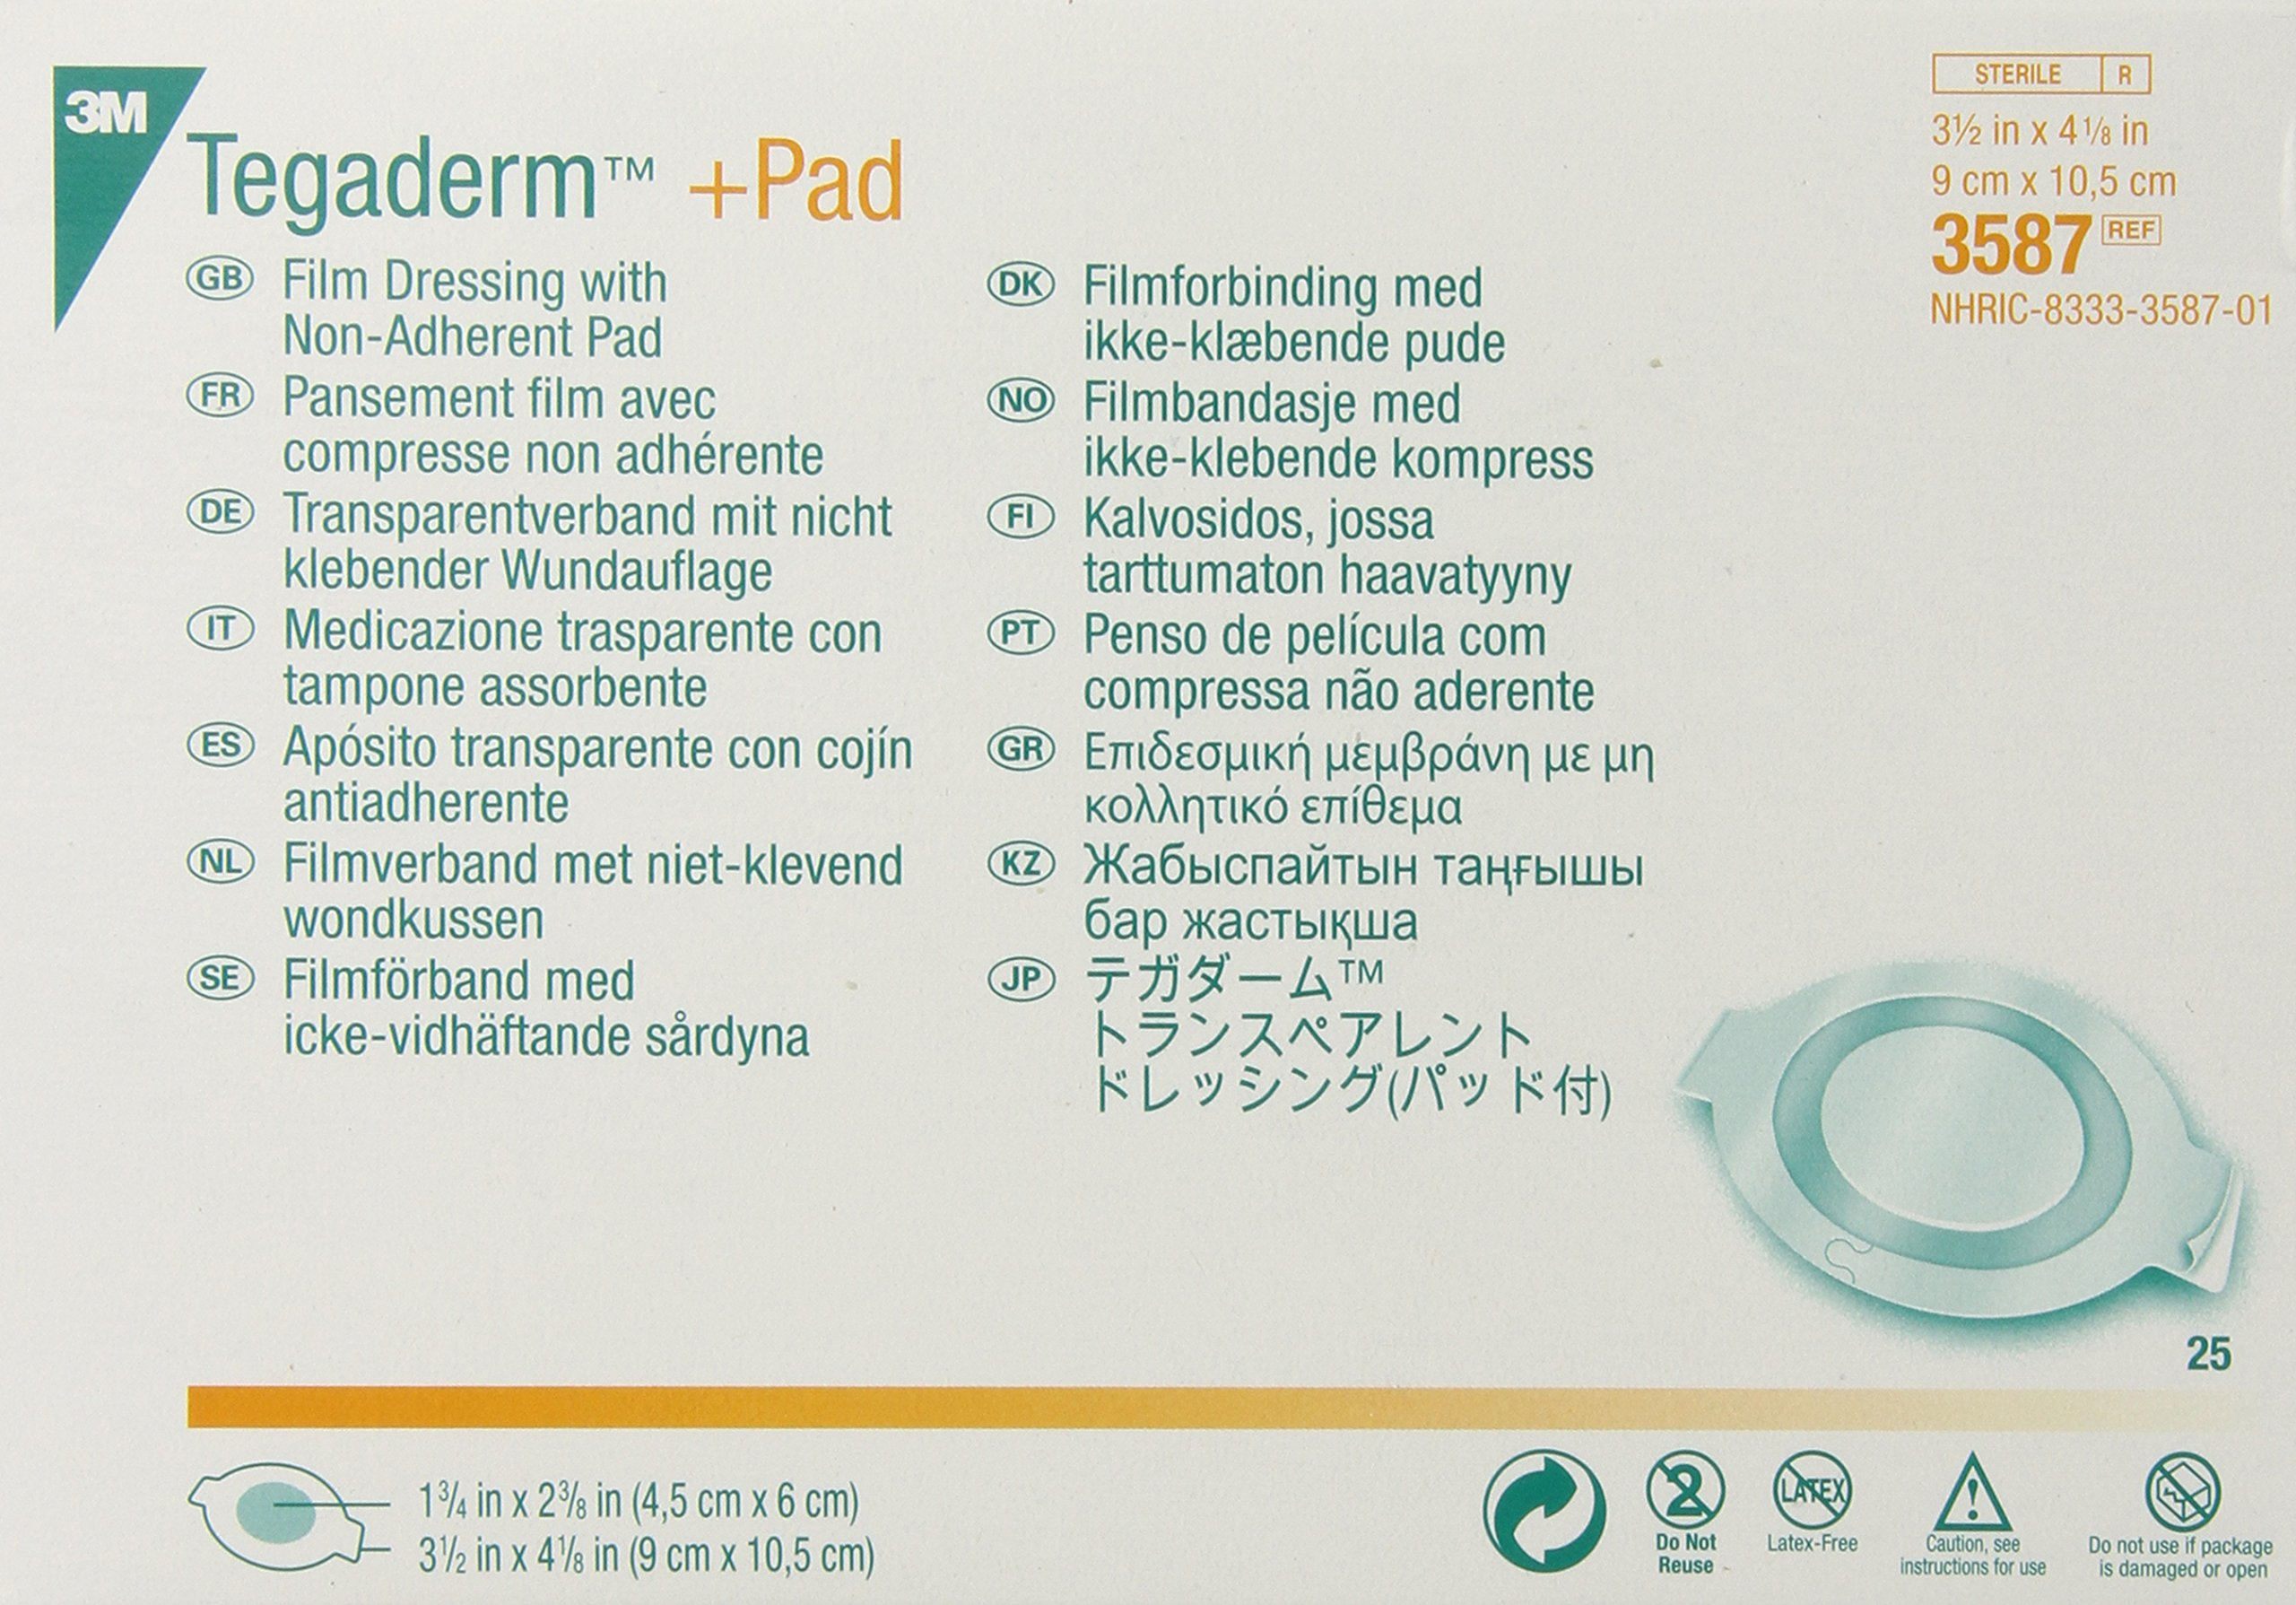 3M Tegaderm +Pad Film Dressing with Non-Adherent Pad 3587 (Pack of 100)